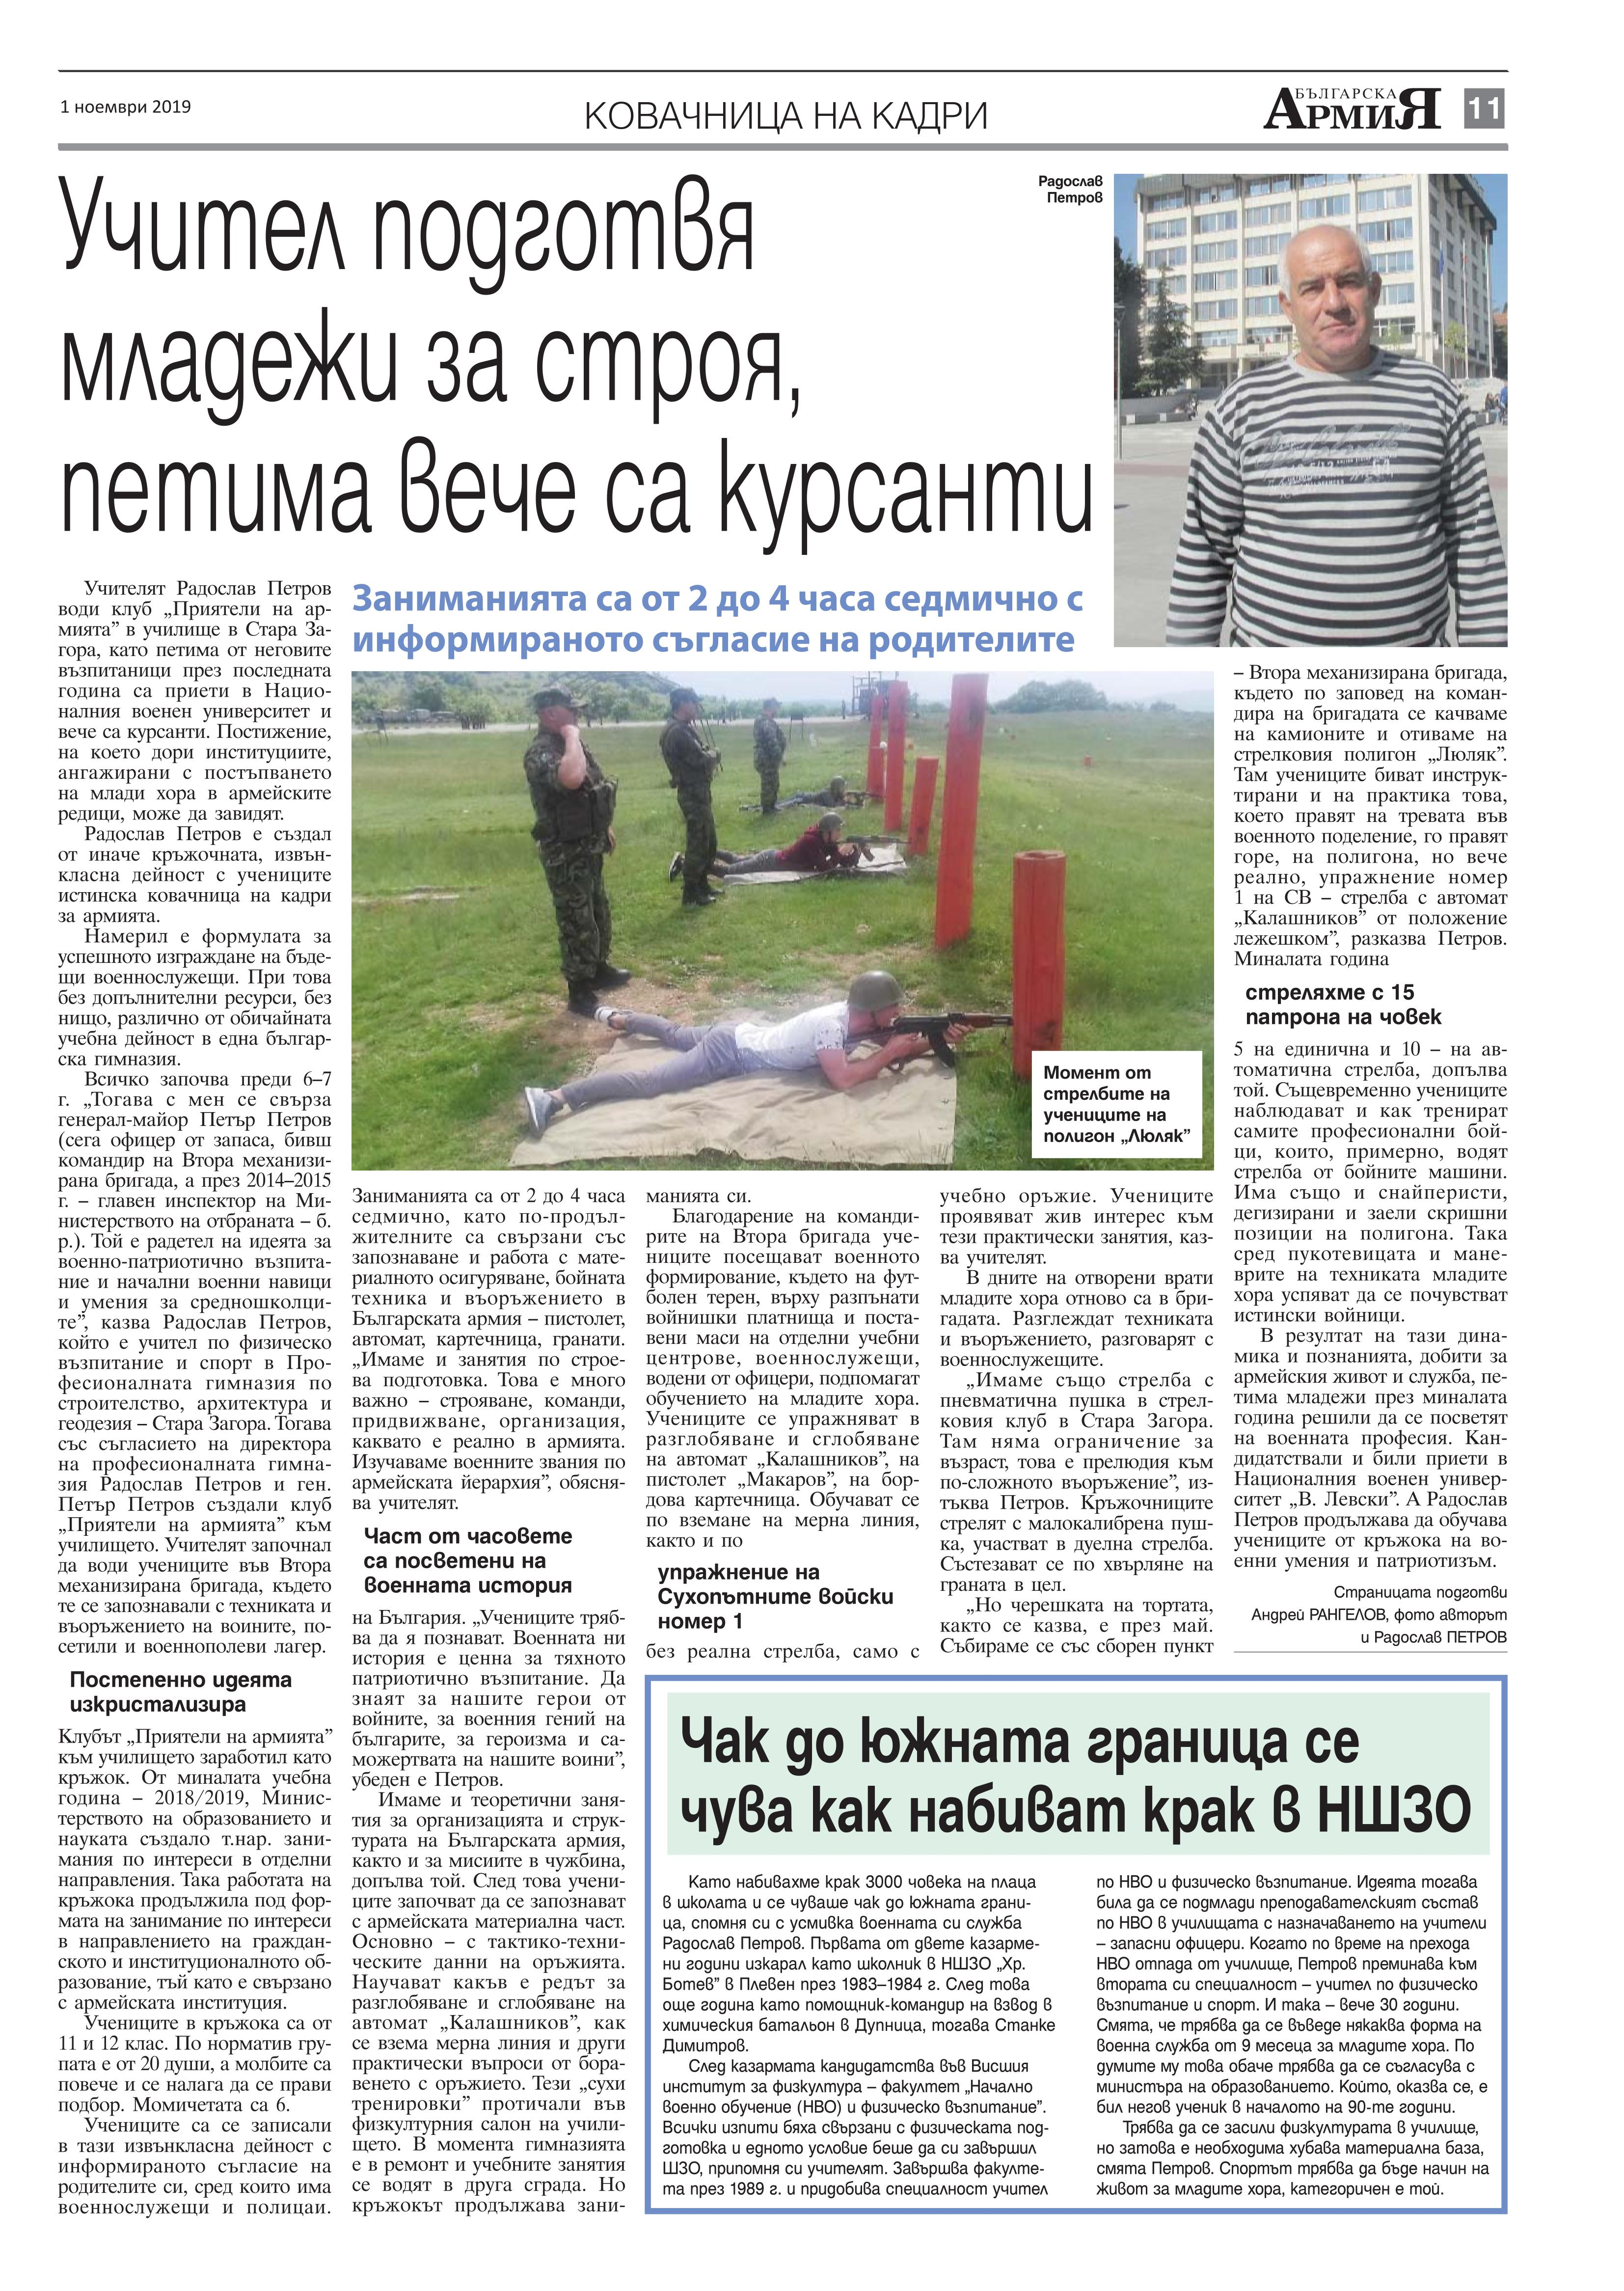 https://www.armymedia.bg/wp-content/uploads/2015/06/11.page1_-114.jpg